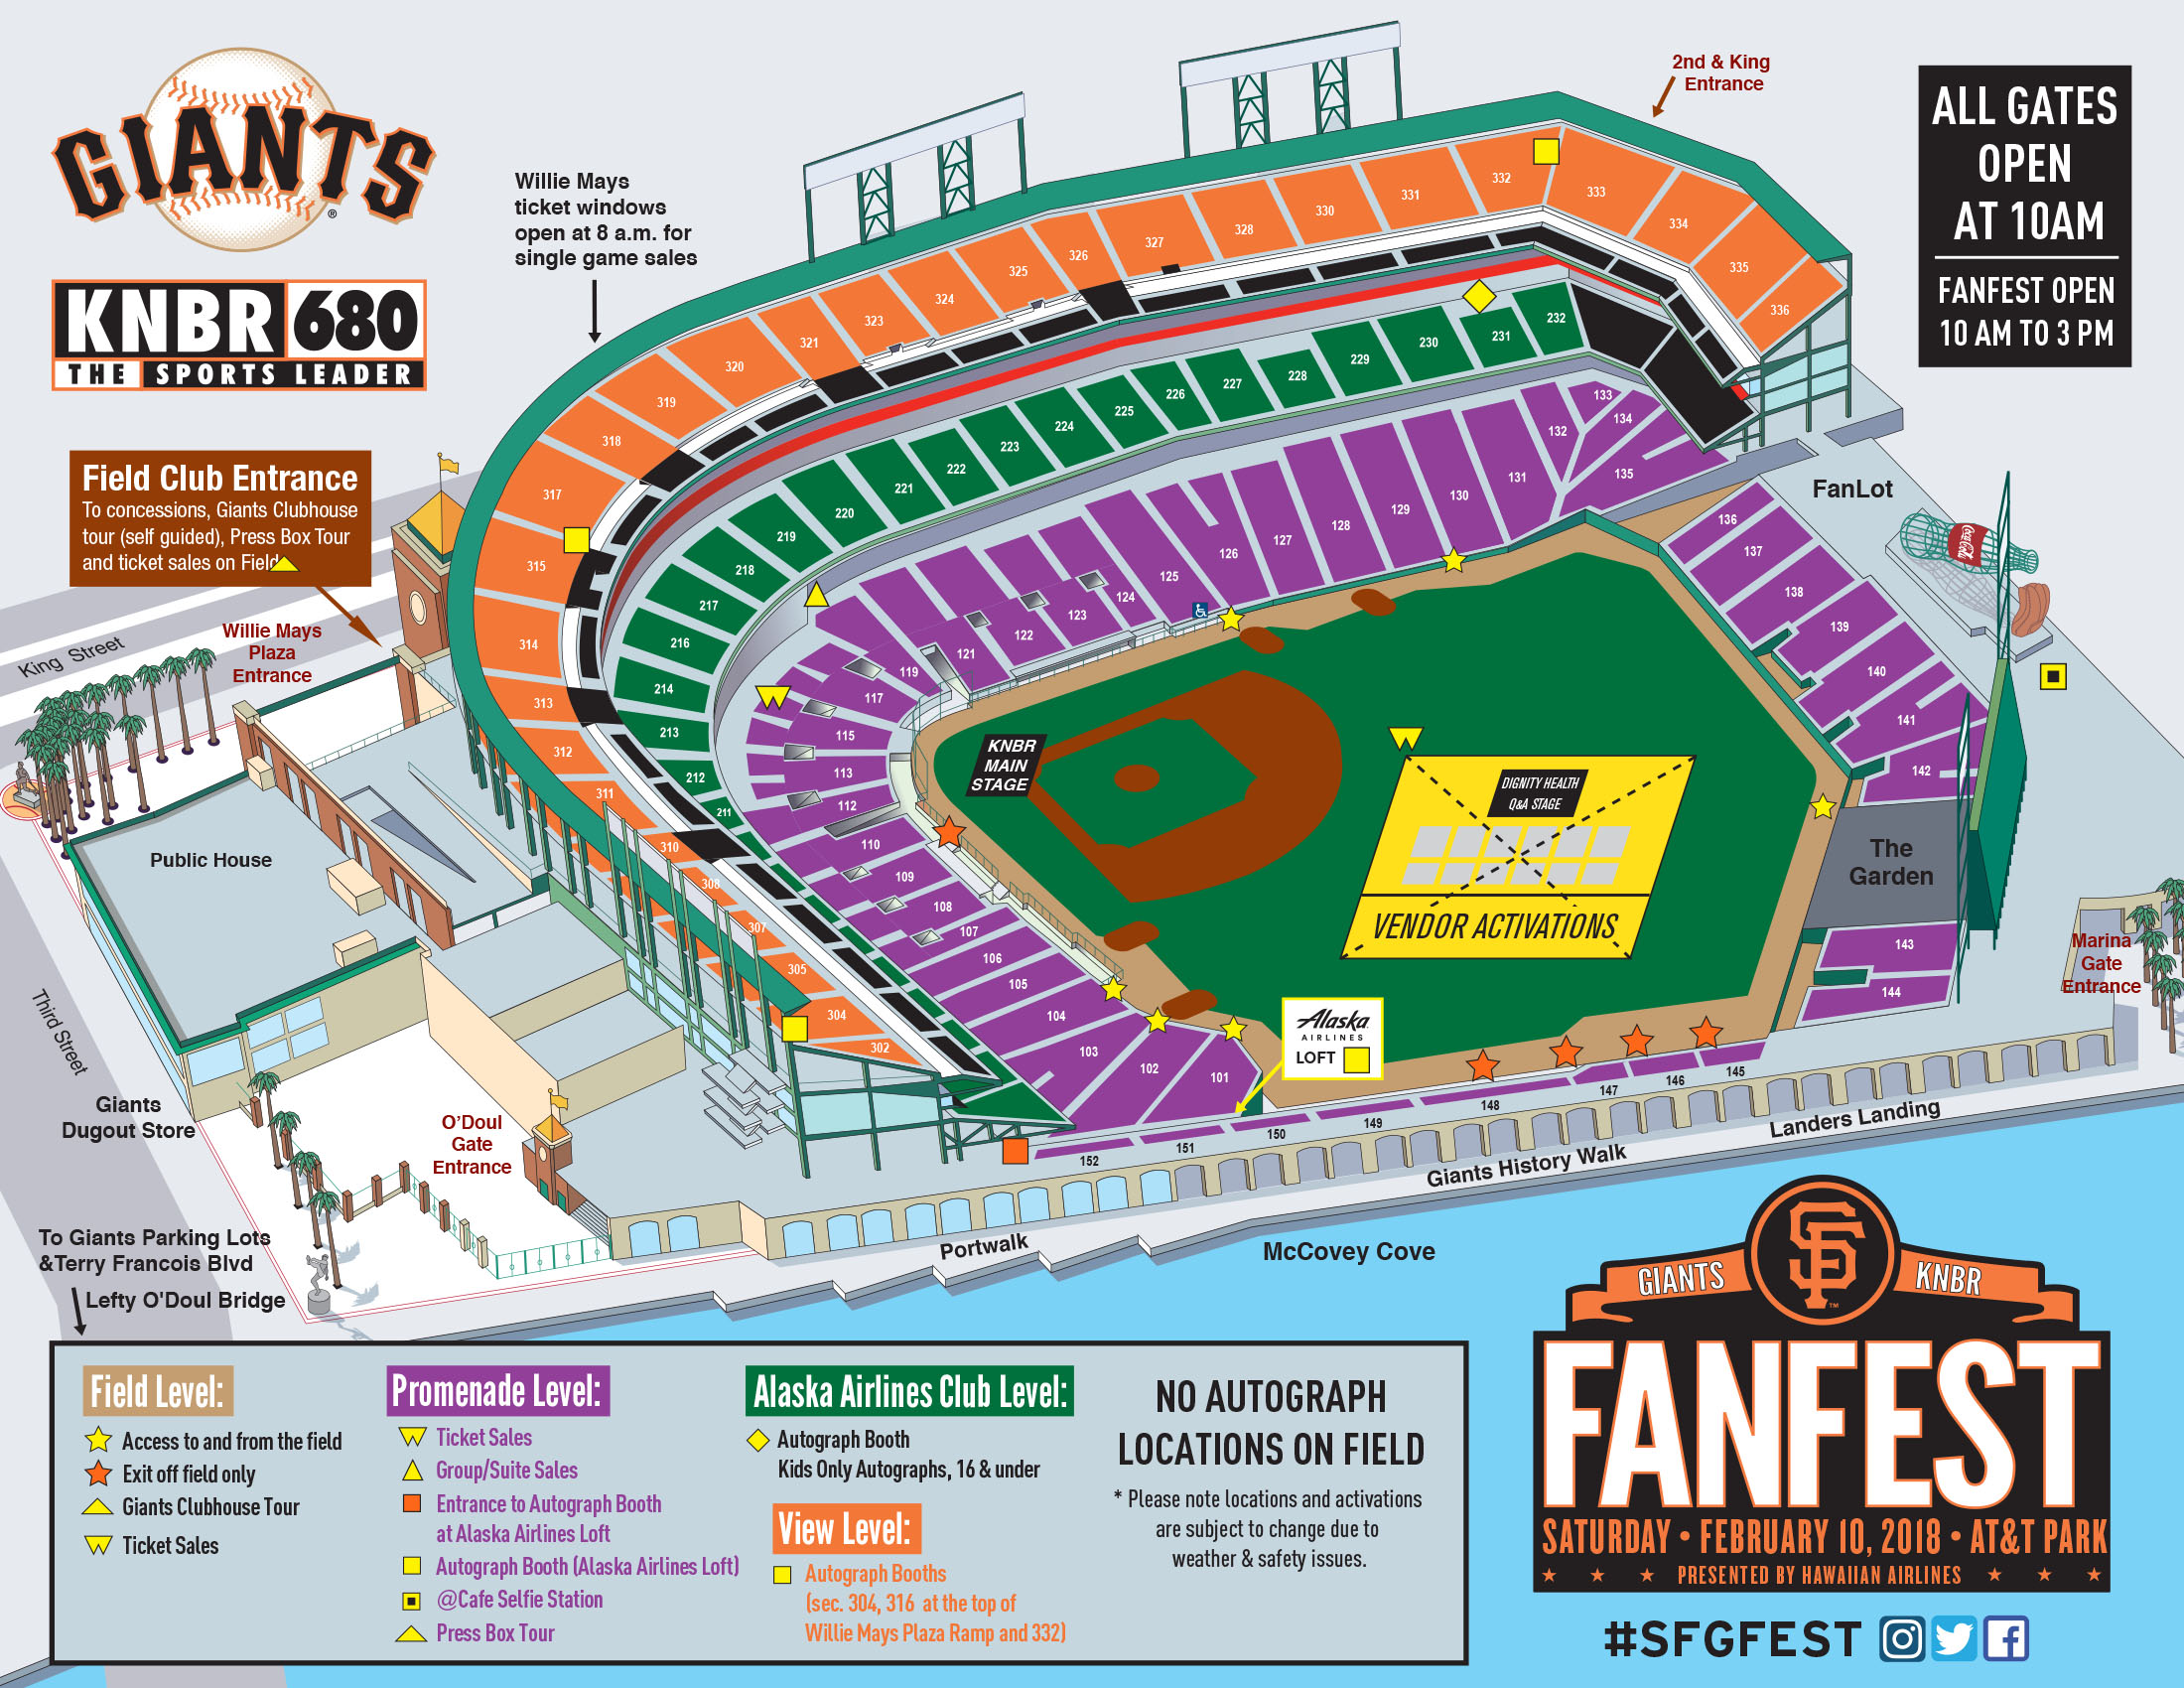 2018 San Francisco Giants FanFest stadium map released | KNBR AM